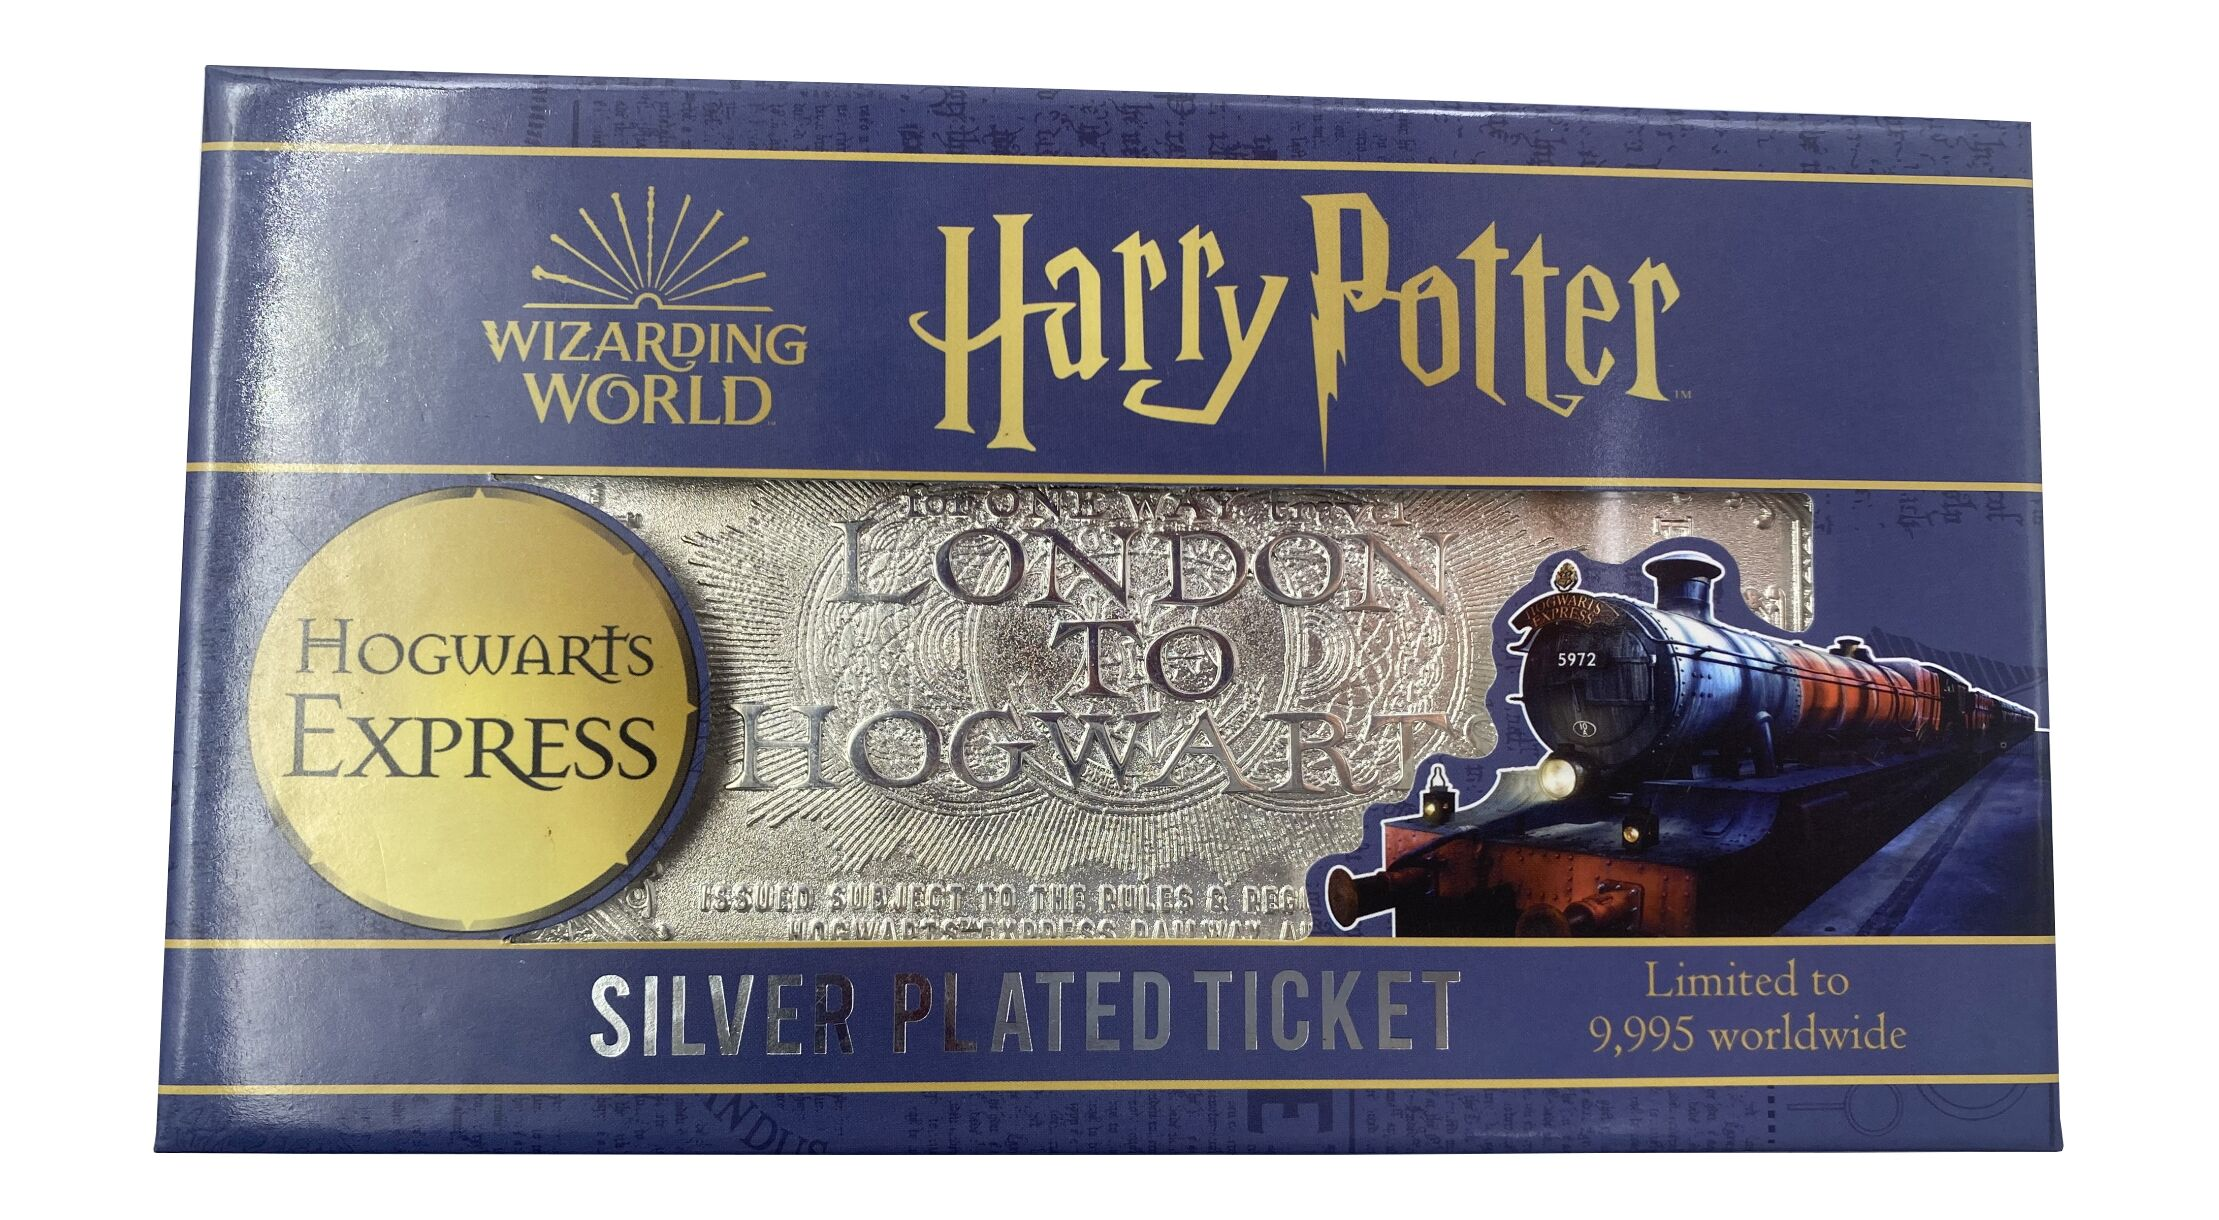 Harry Potter Hogwarts Express ticket